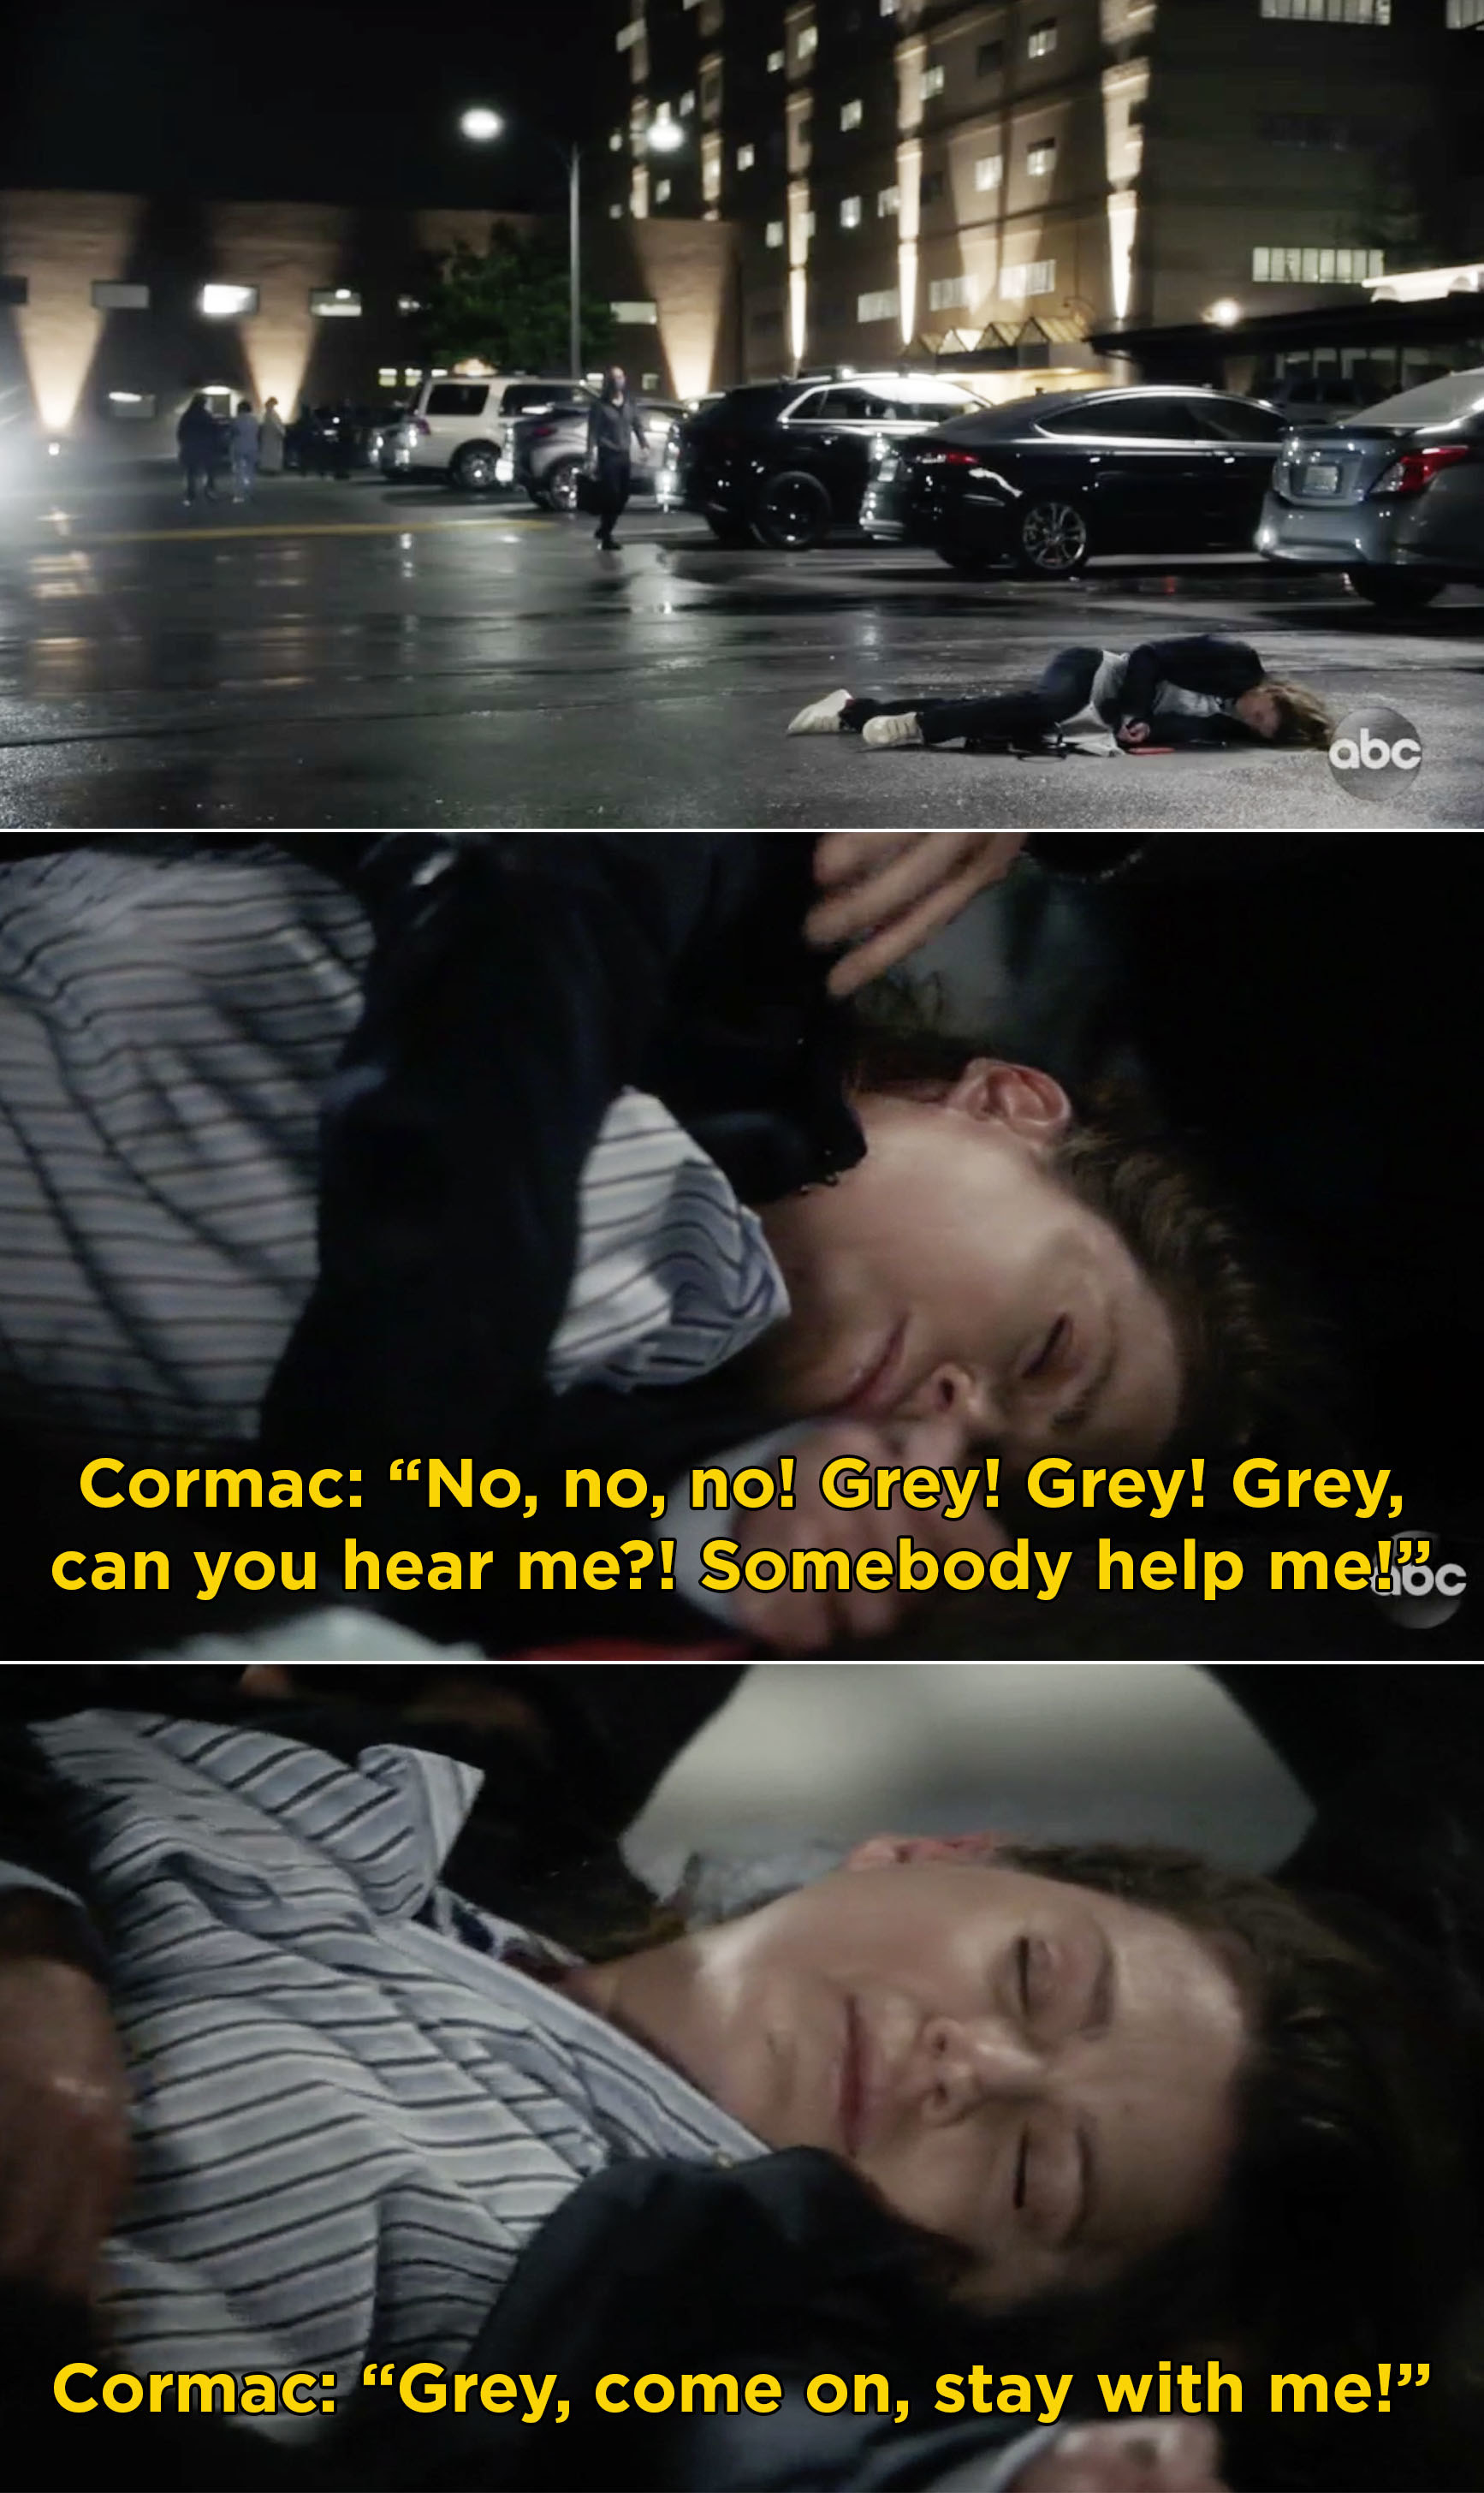 """Cormac reaching down to Meredith, who is unconscious, and saying, """"Grey, can you hear me? Somebody help me!"""""""